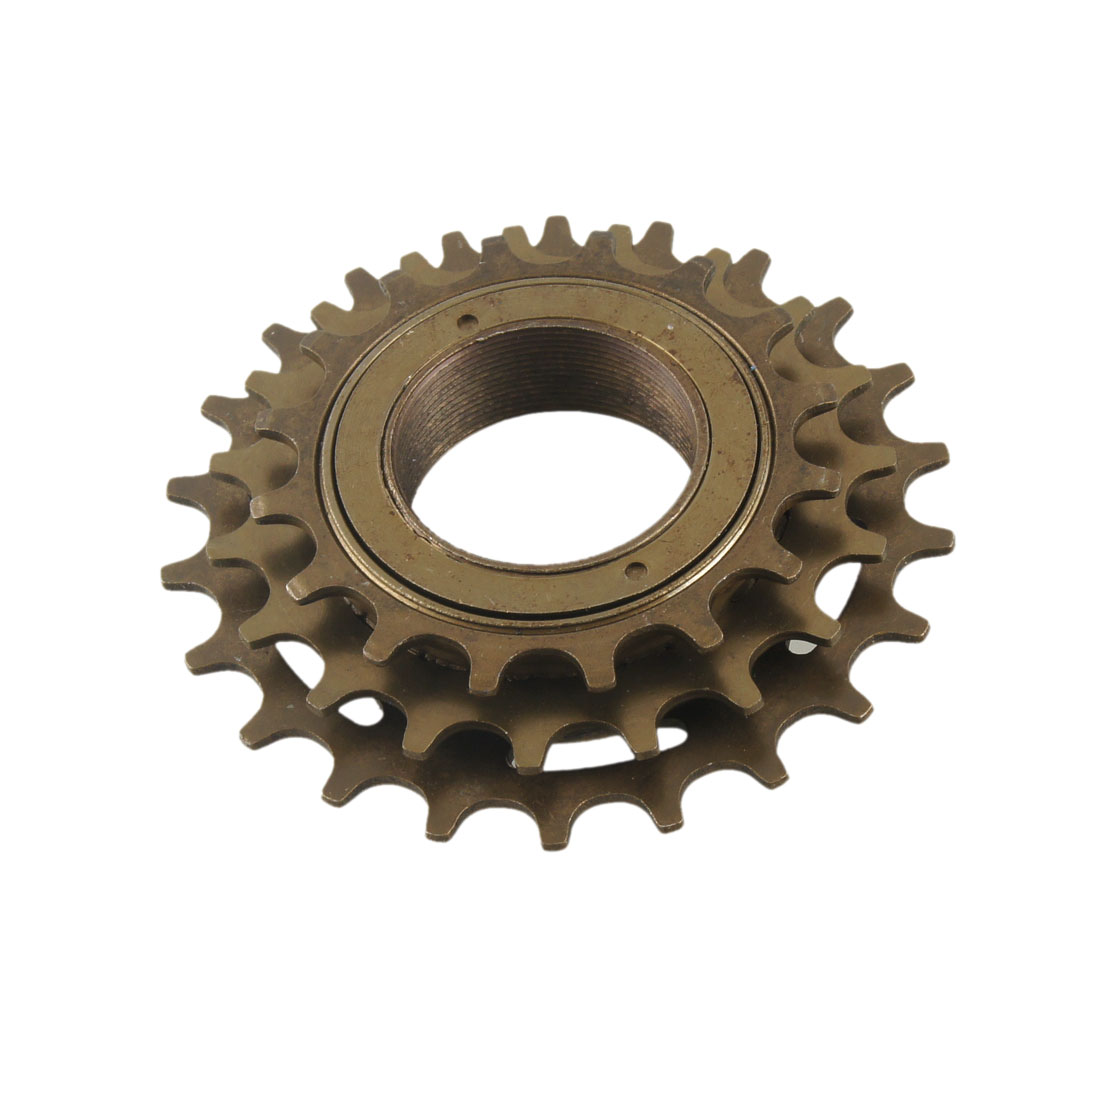 Bicycle Scooter Sprocket Wheel 3 Speed Freewheel Repair Part